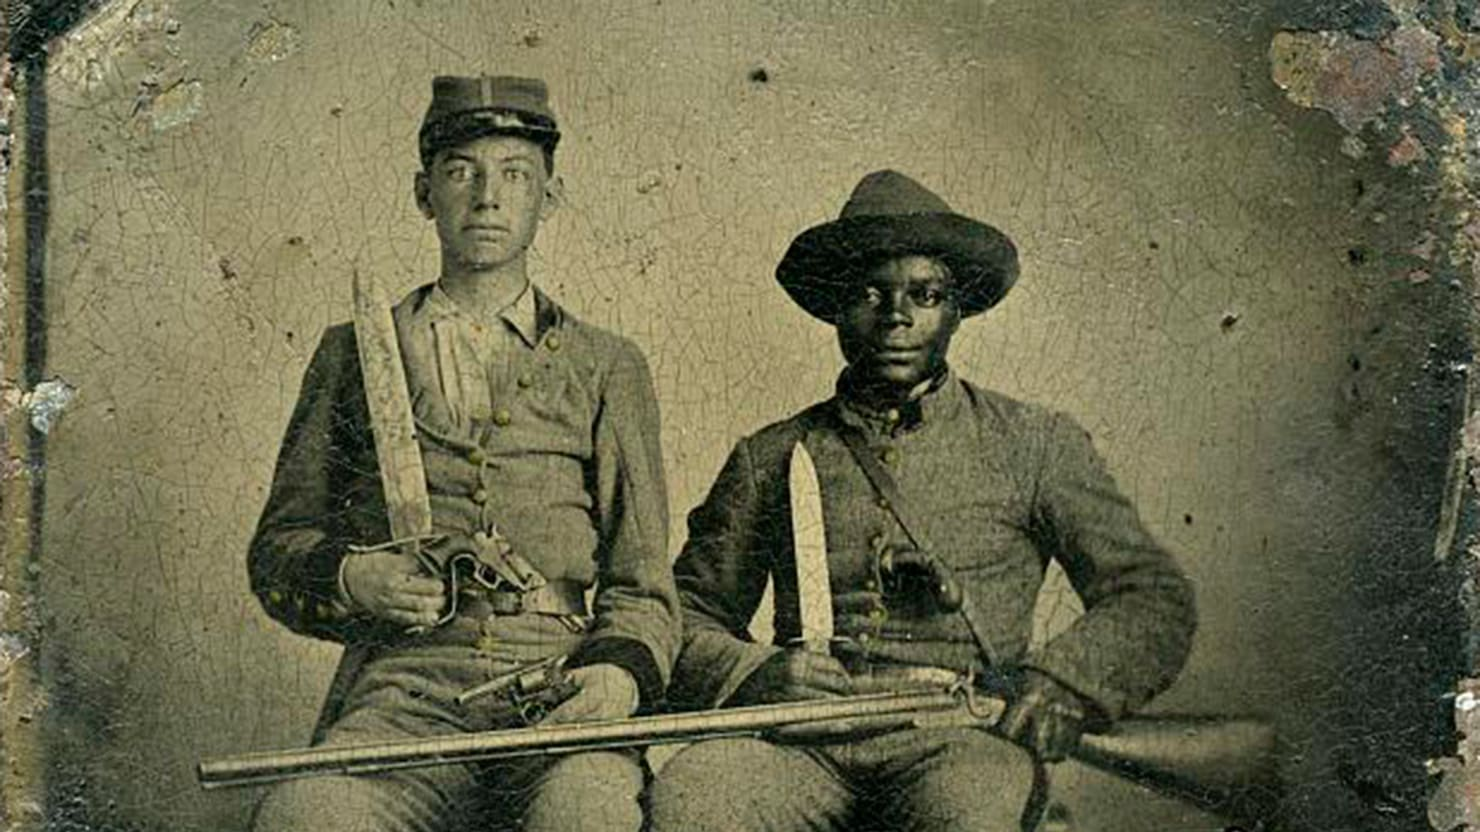 The Myth of the Black Confederate Soldier